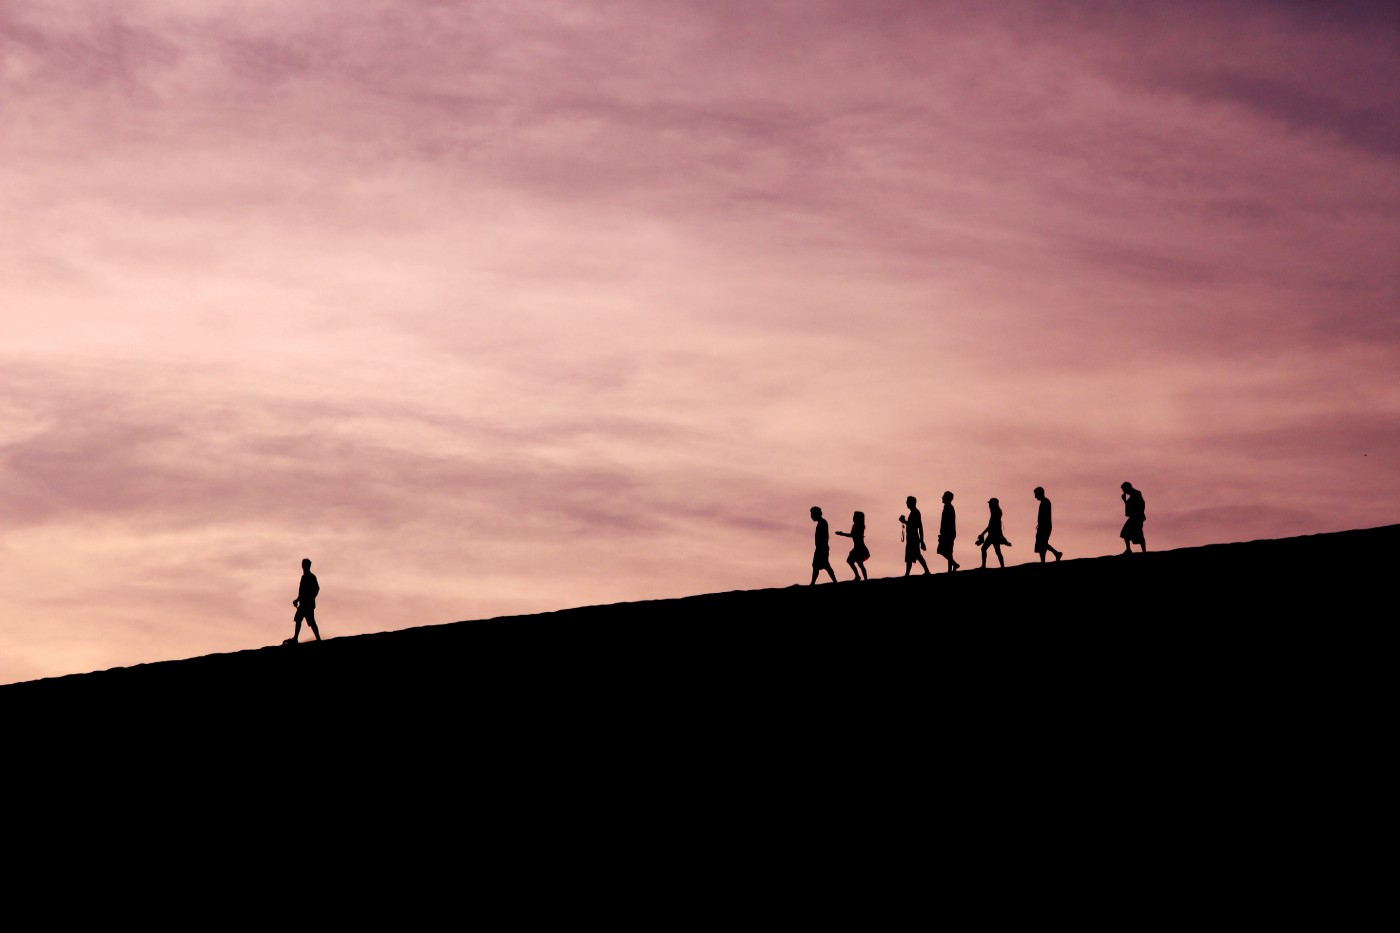 Silhouette of people walking along a ridge with a pink sky behind